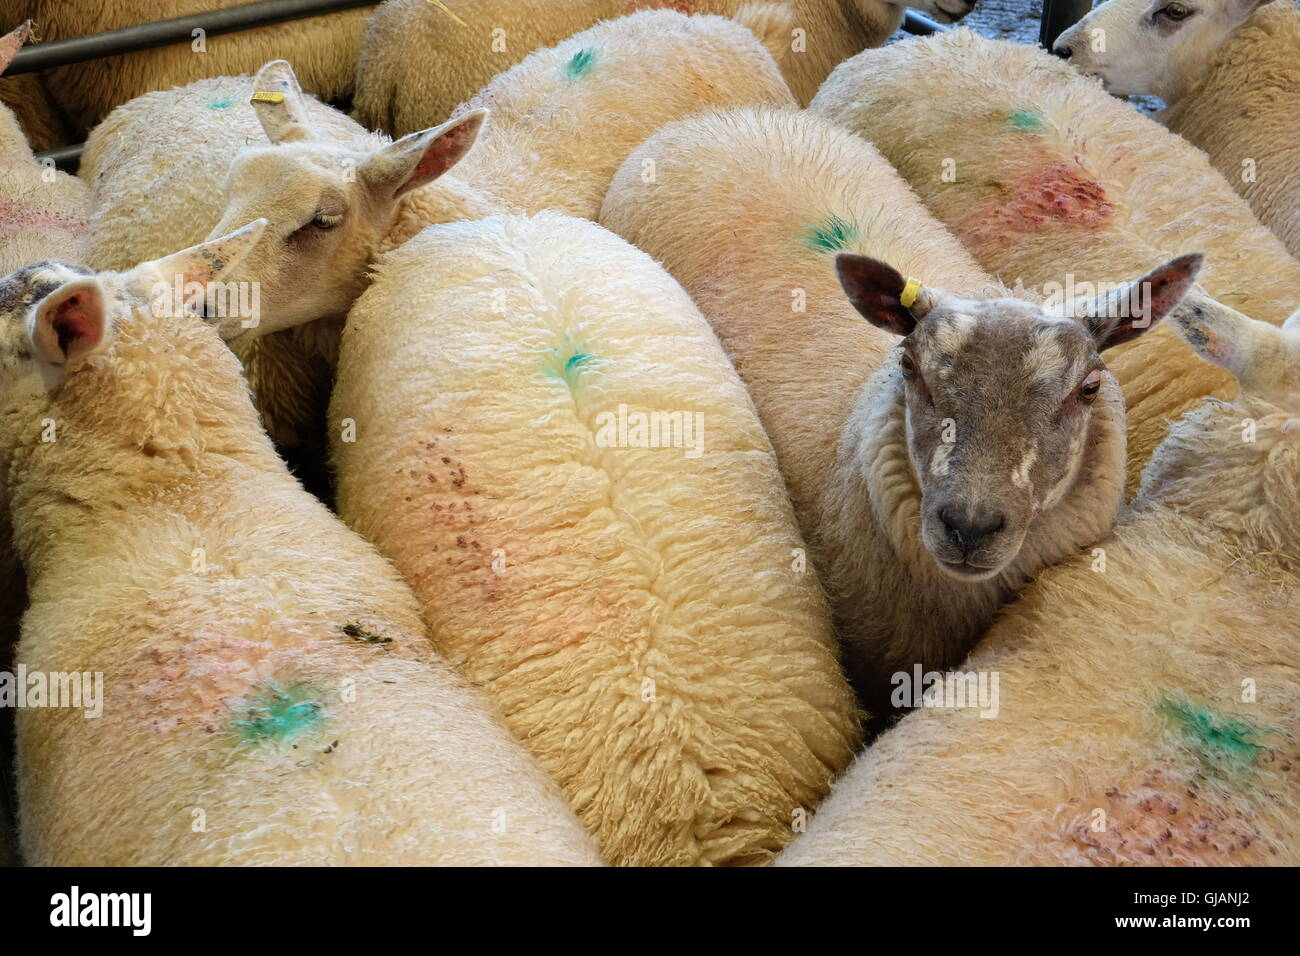 Sheep in pen waiting for auction - Stock Image